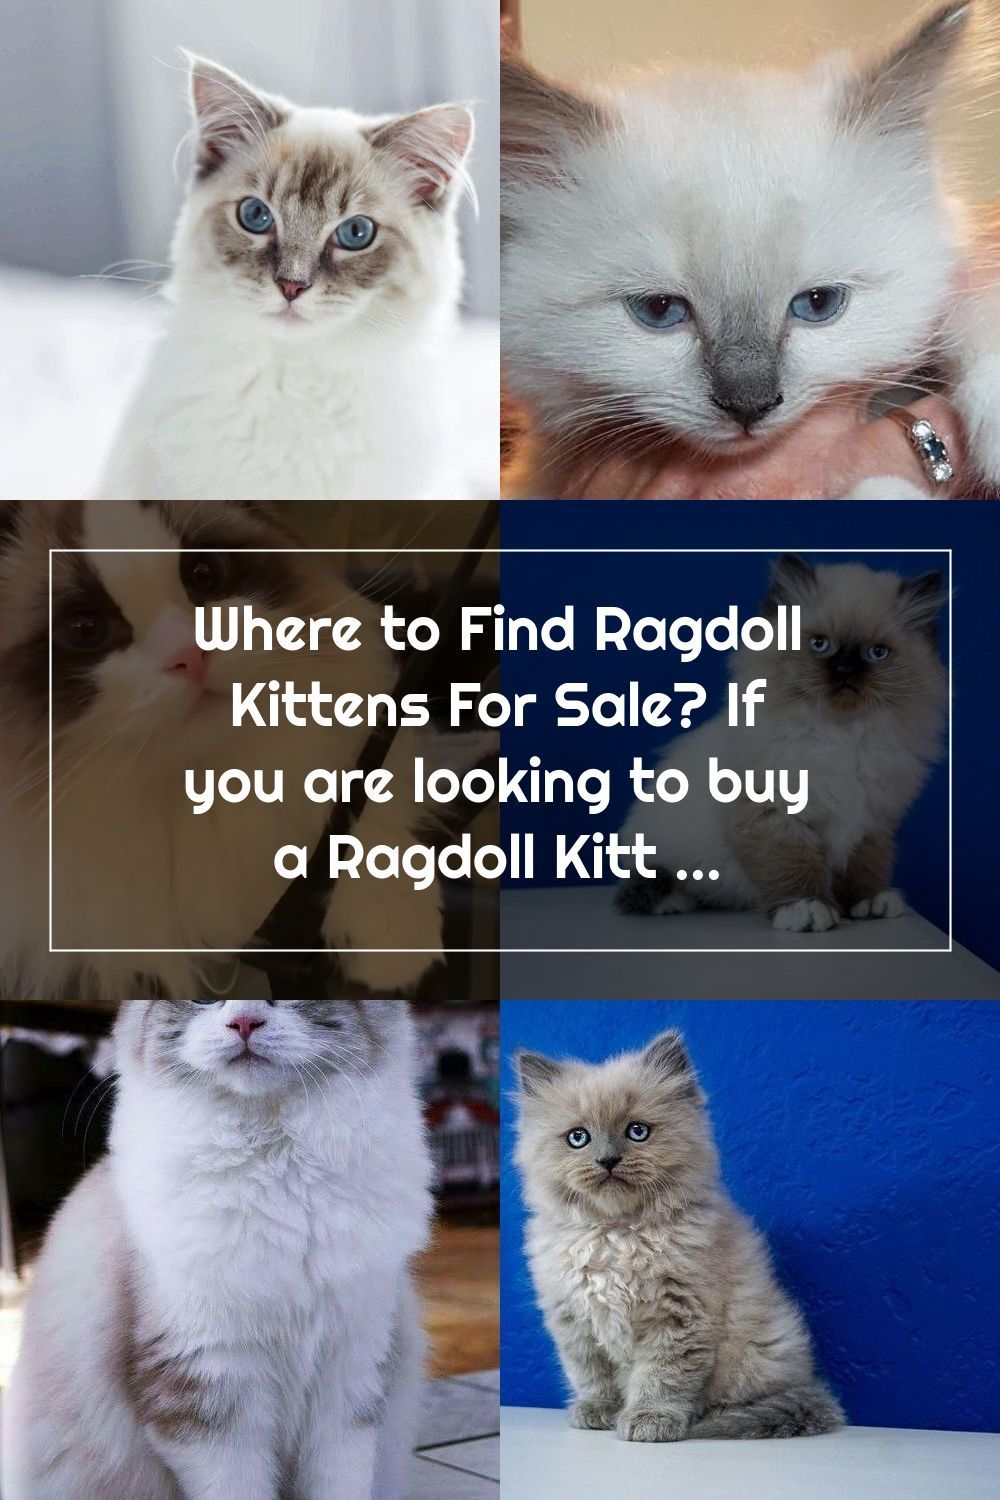 Where To Find Ragdoll Kittens For Sale If You Are Looking To Buy A Ragdoll Kitten Or Adopt It Might S In 2020 Ragdoll Kittens For Sale Ragdoll Kitten Kitten For Sale